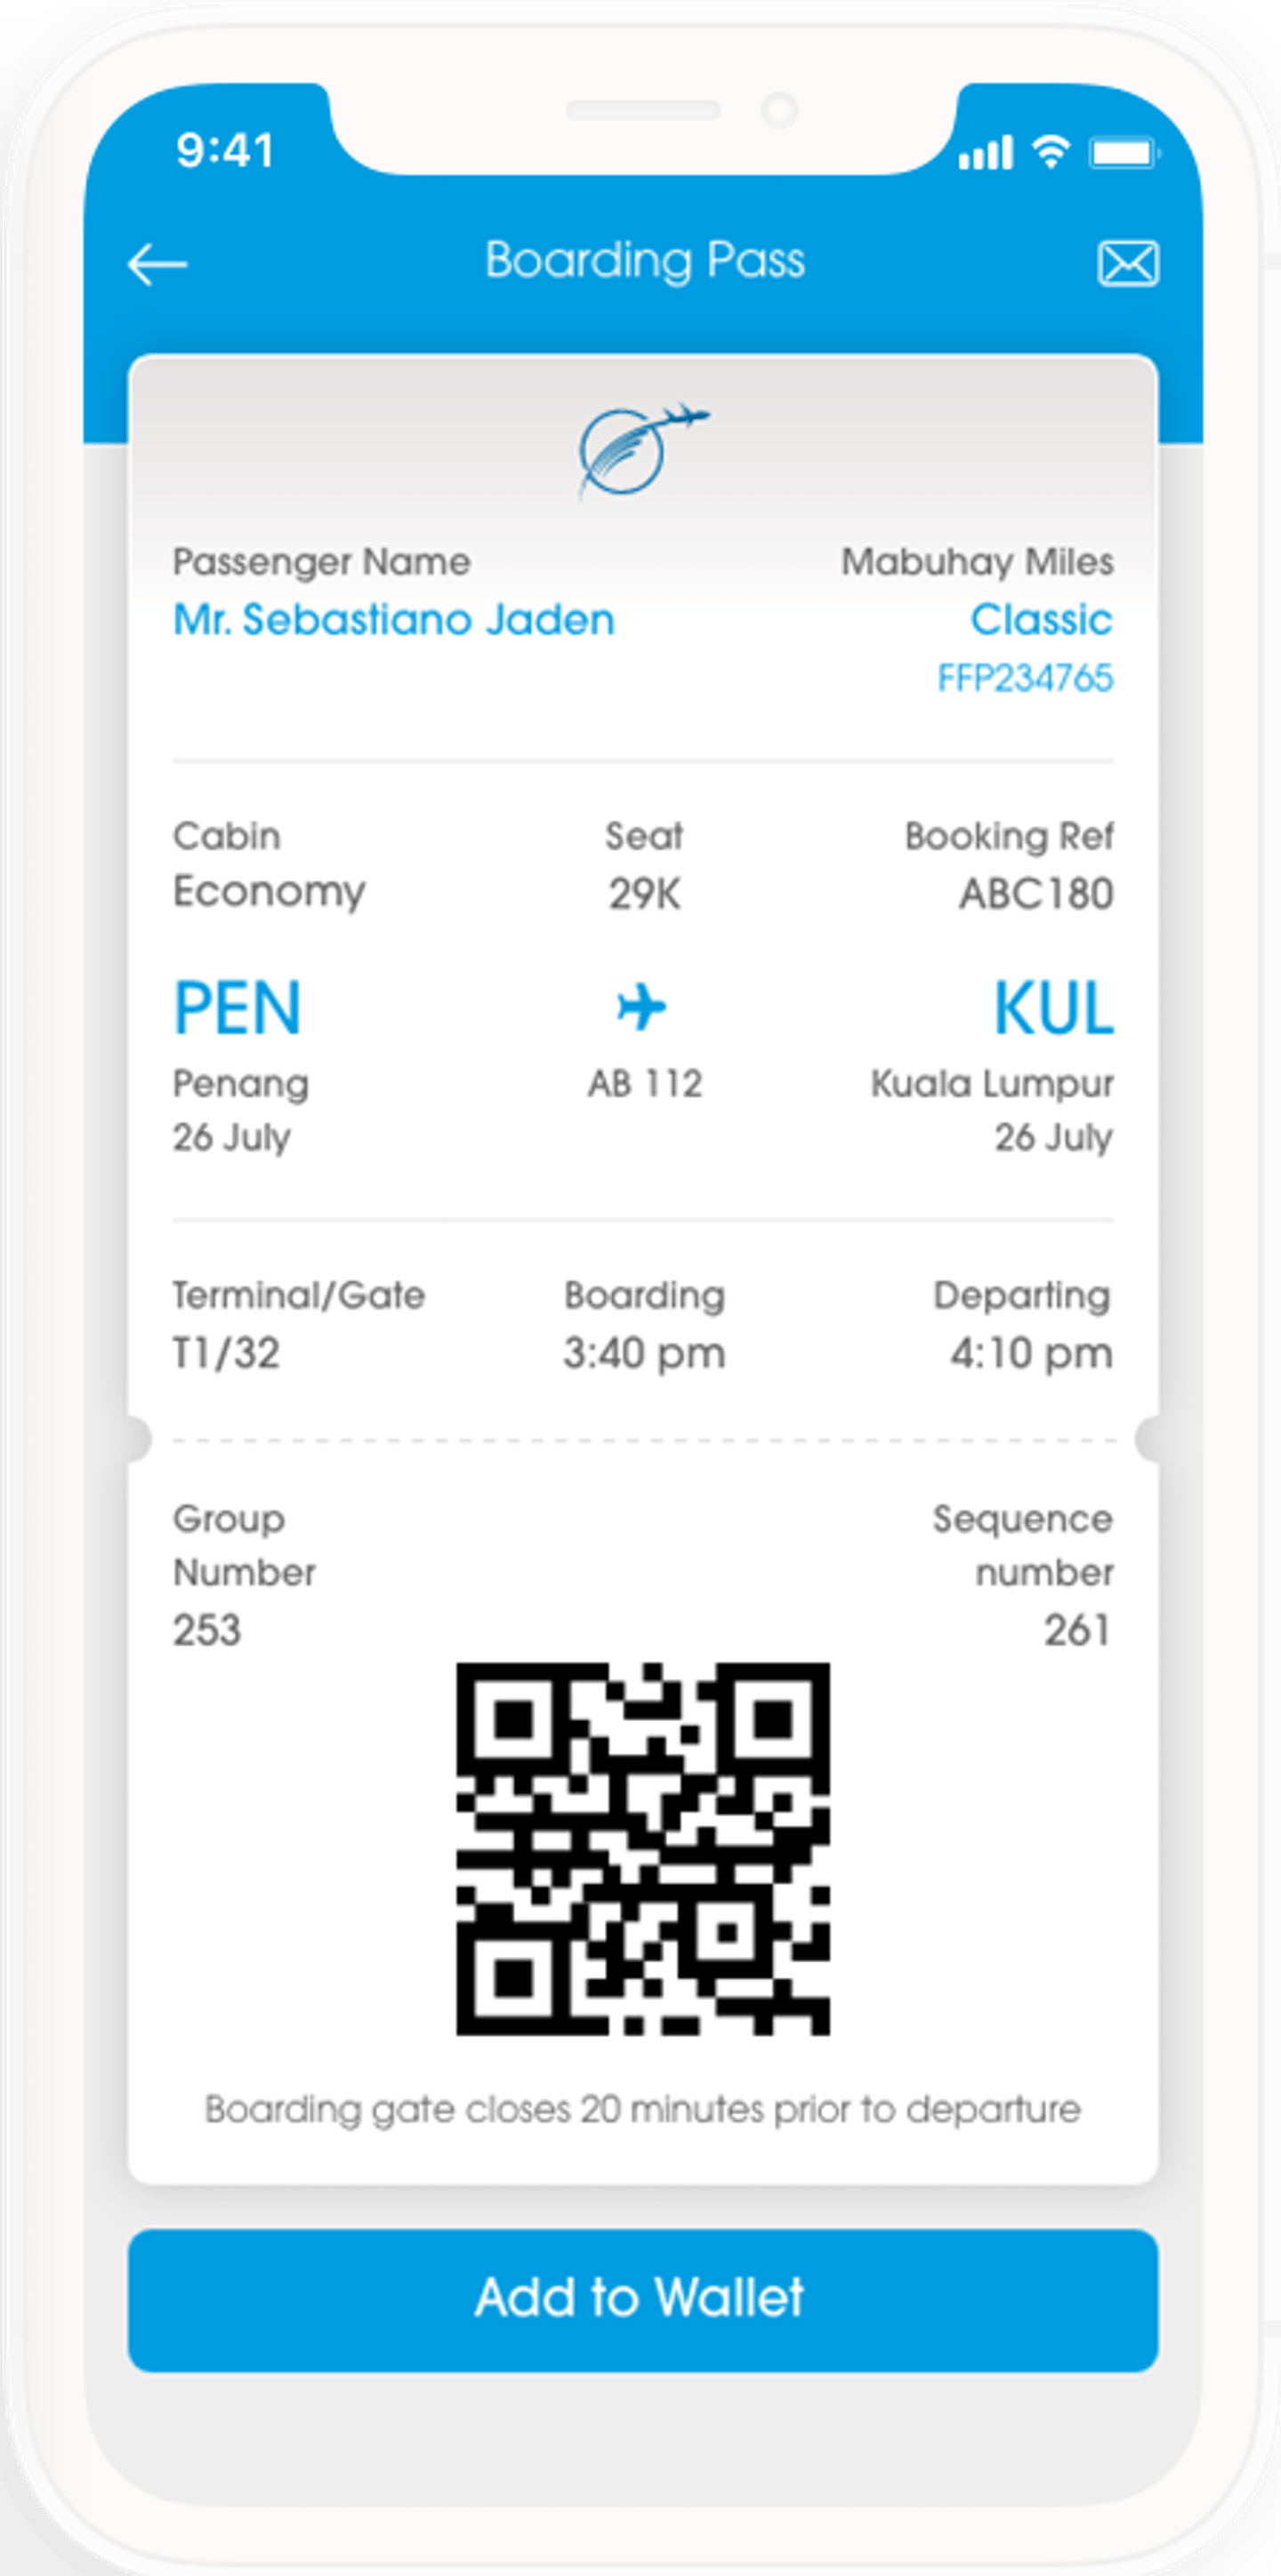 Voyage digital check-in issuign boarding via email or via local download on the app